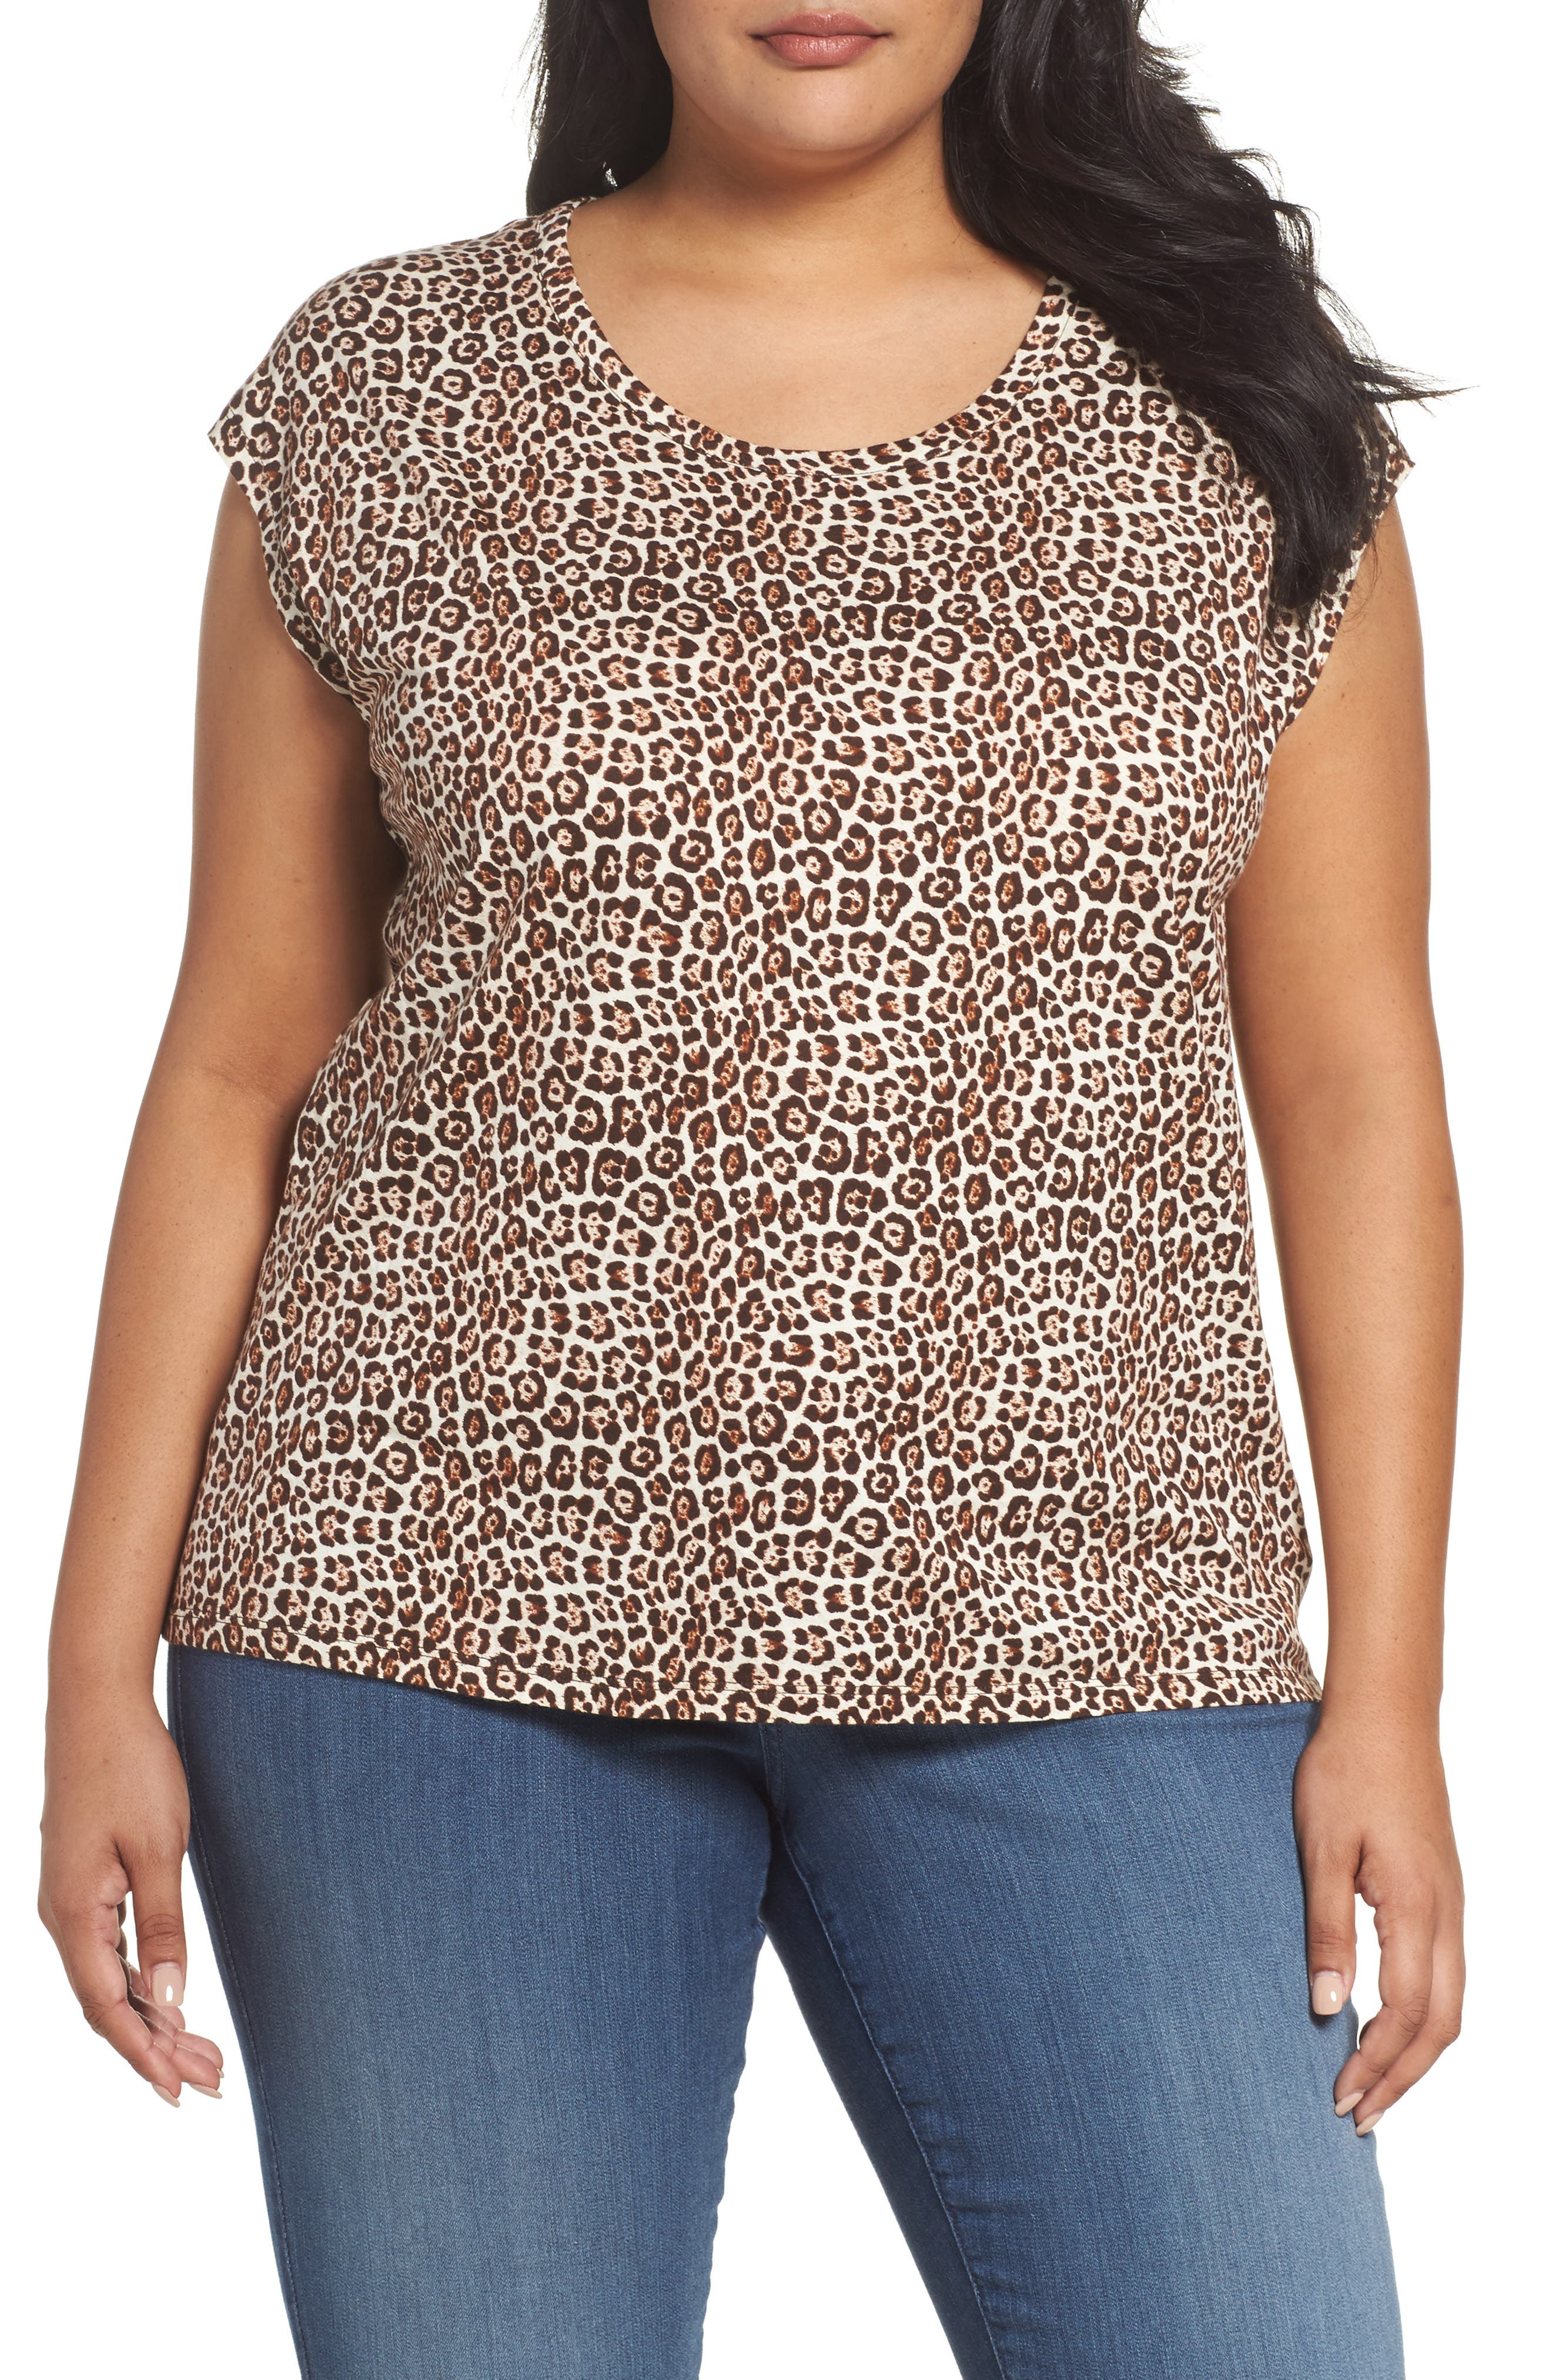 MICHAEL Michael Kors Leopard Print Elliptical Top (Plus Size)